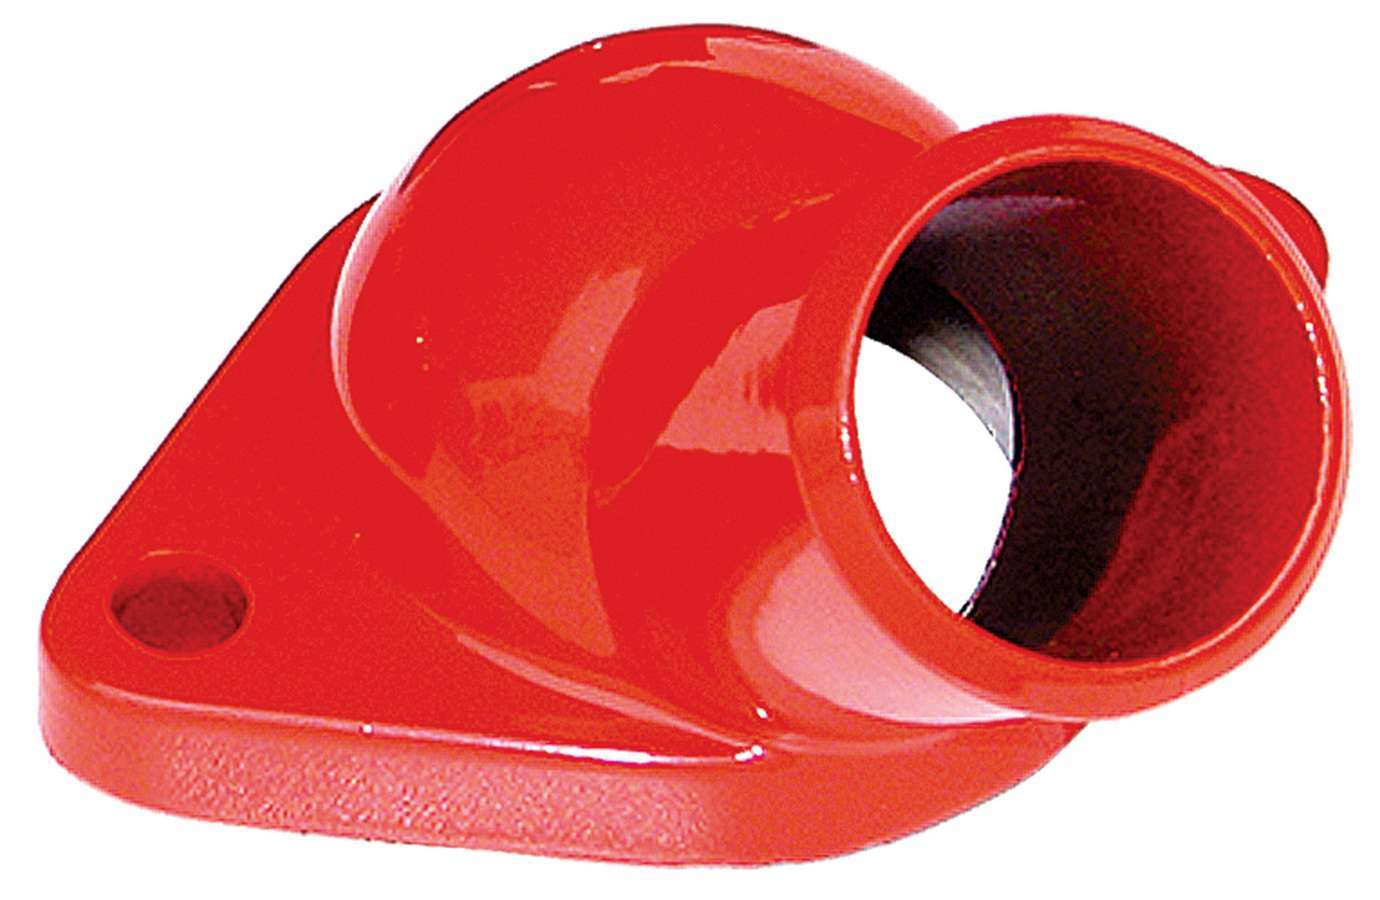 Trans Dapt 9928 Water Neck, 45 Degree, 1-1/2 in ID Hose, O-Ring, Hardware Included, Steel, Orange Powder Coat, Chevy V8, Each